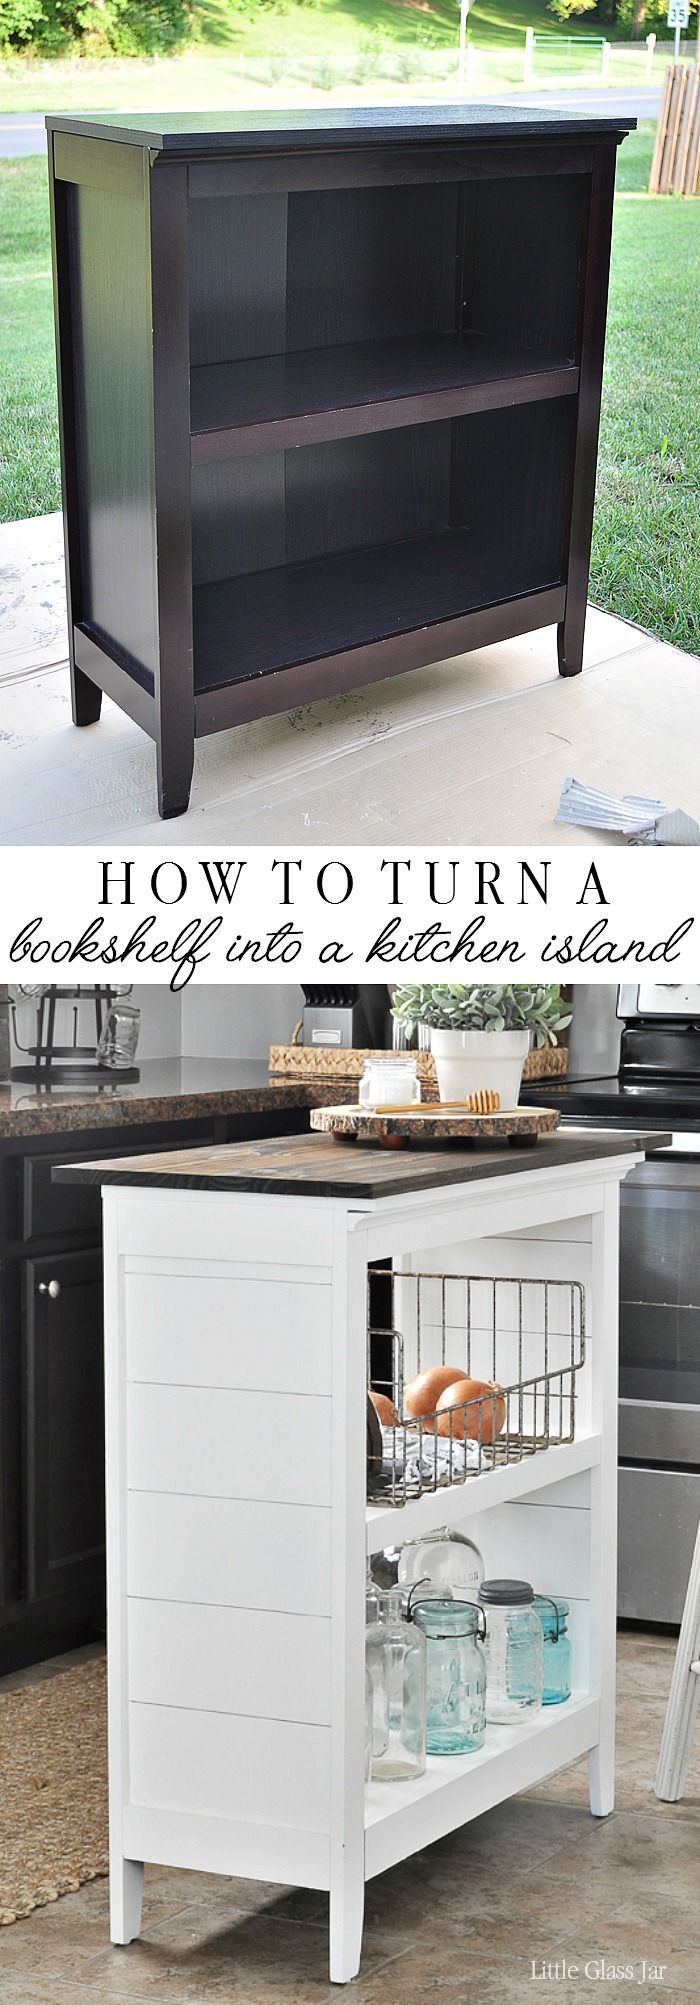 625 best kitchen islands images on pinterest kitchen islands